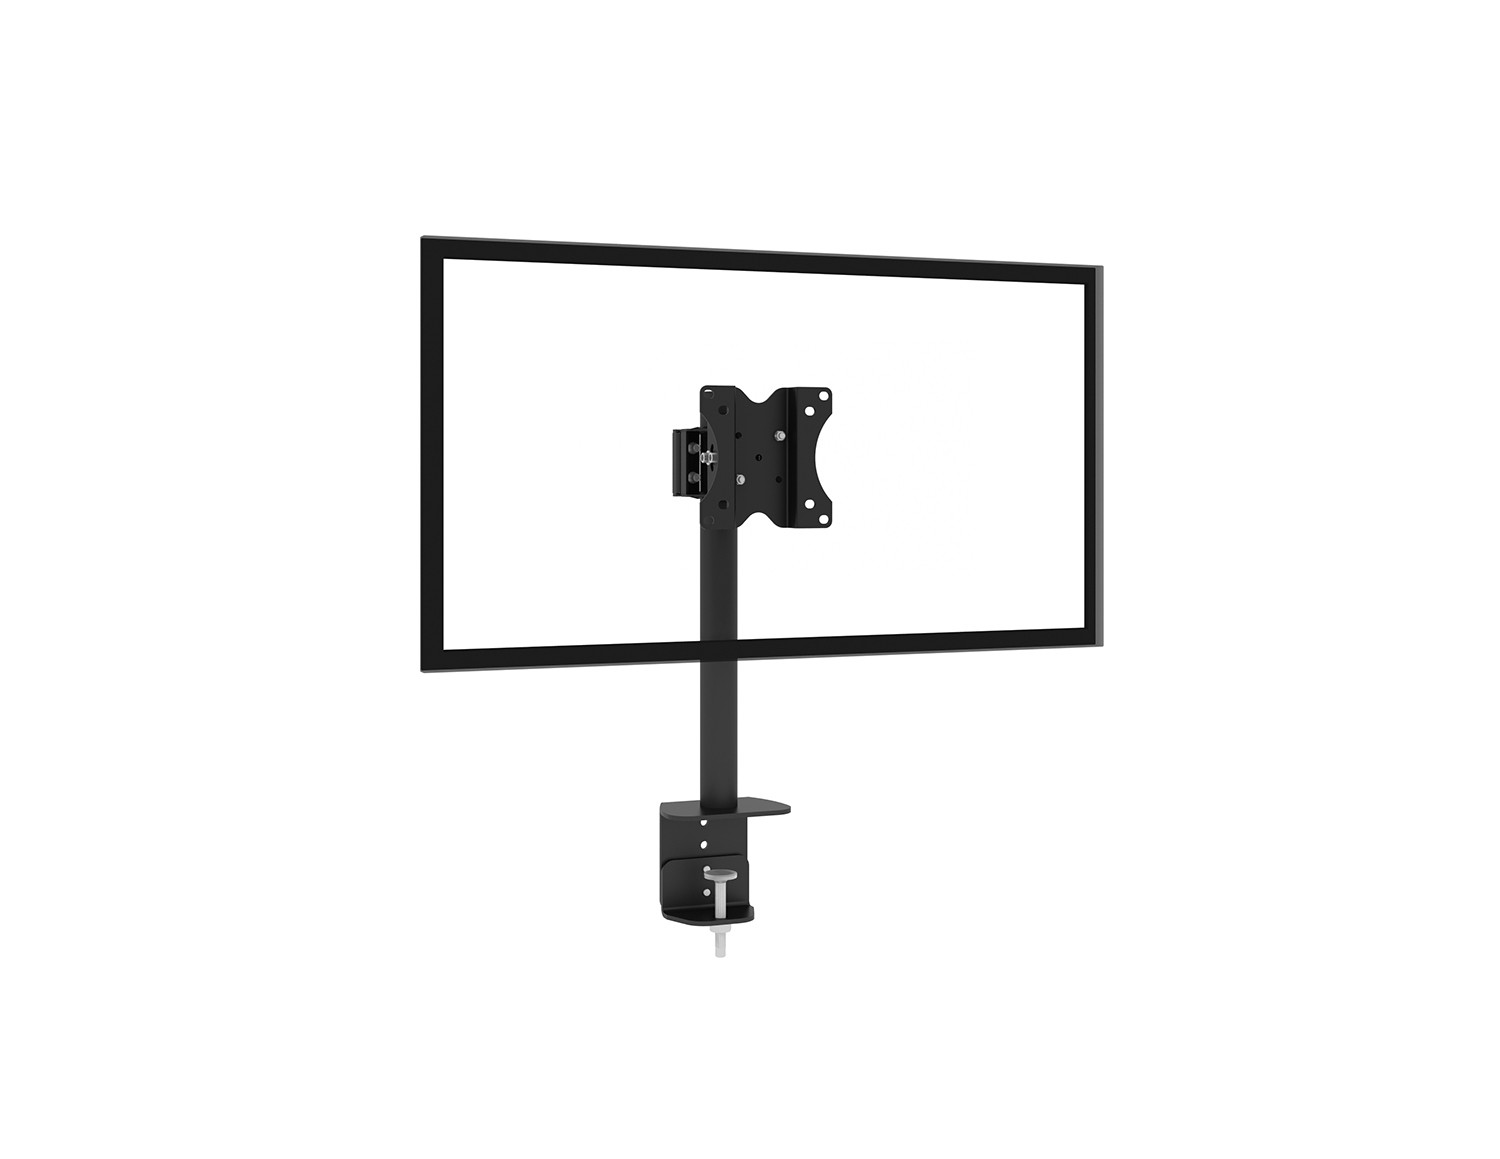 Single Monitor Desk Mount DM11T